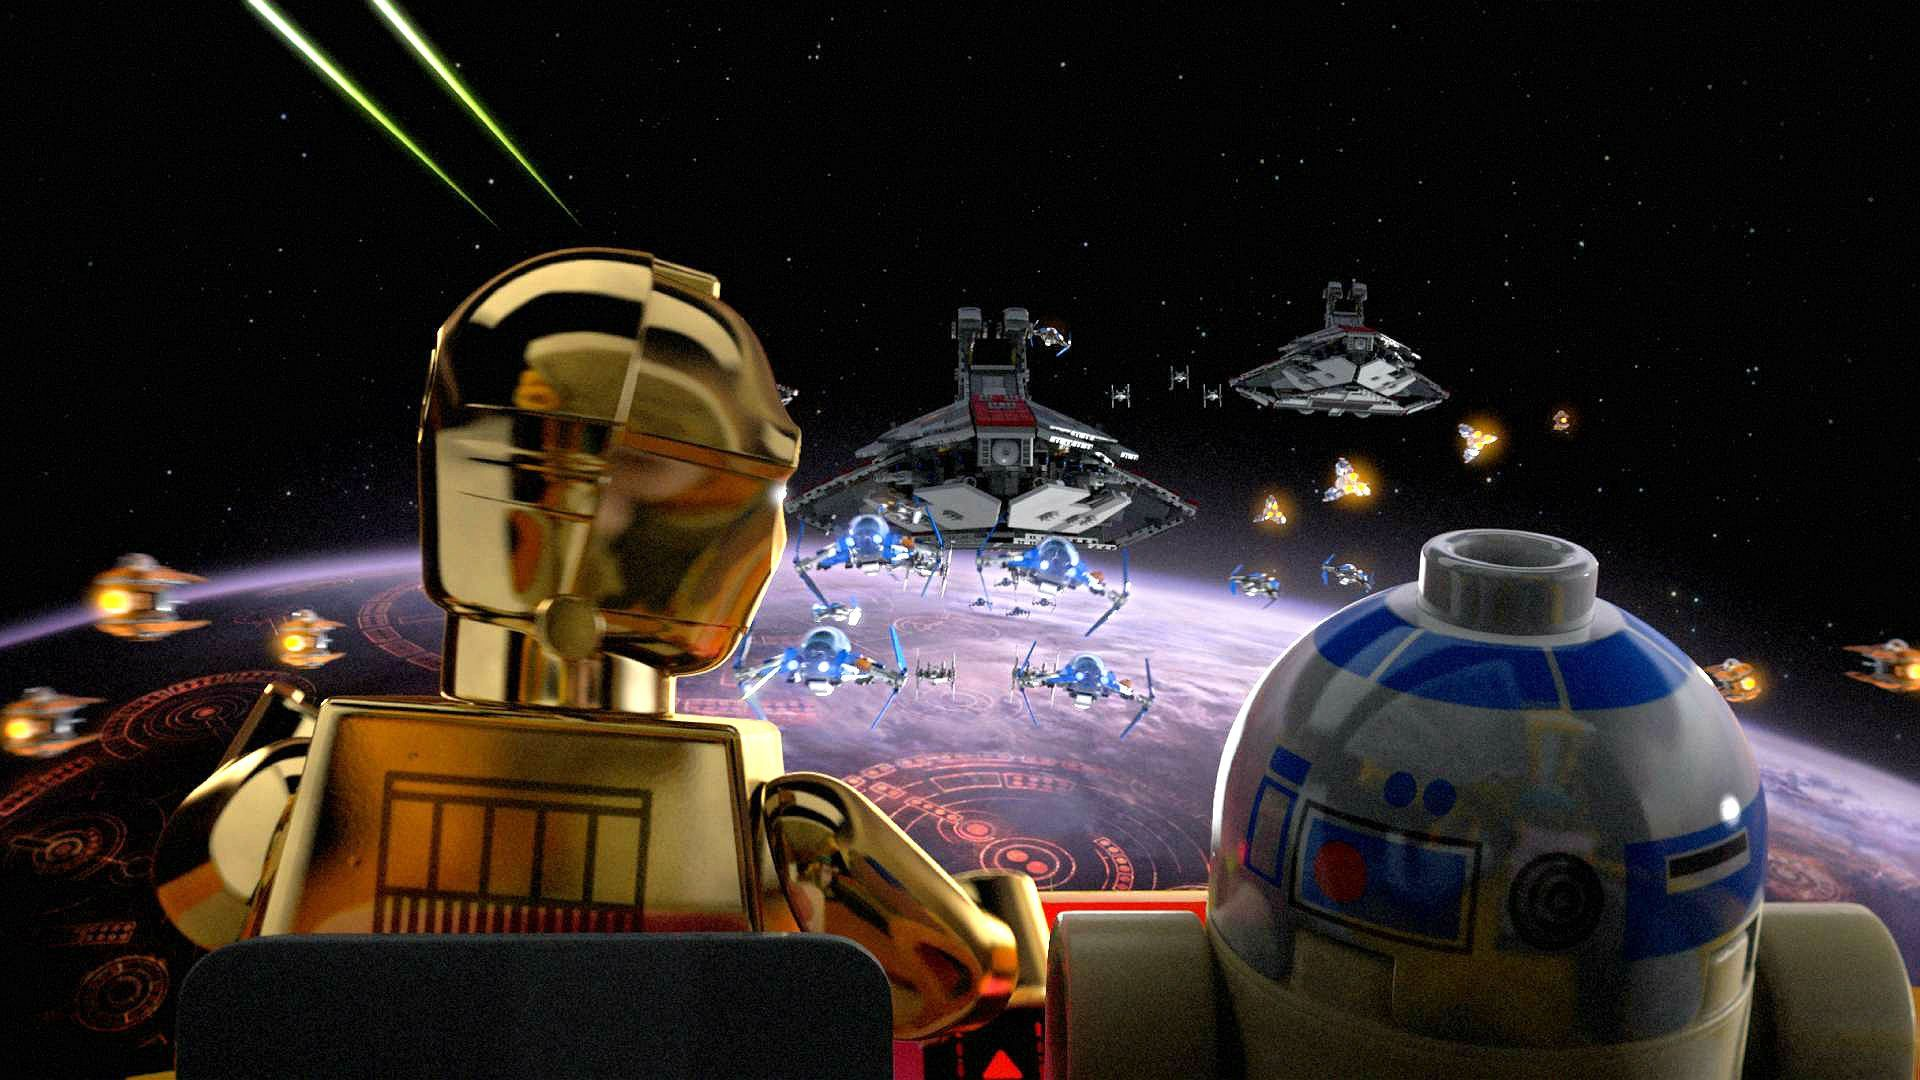 Lego Star Wars Images HD Wallpaper And Background 1600x1200 Wallpapers 42